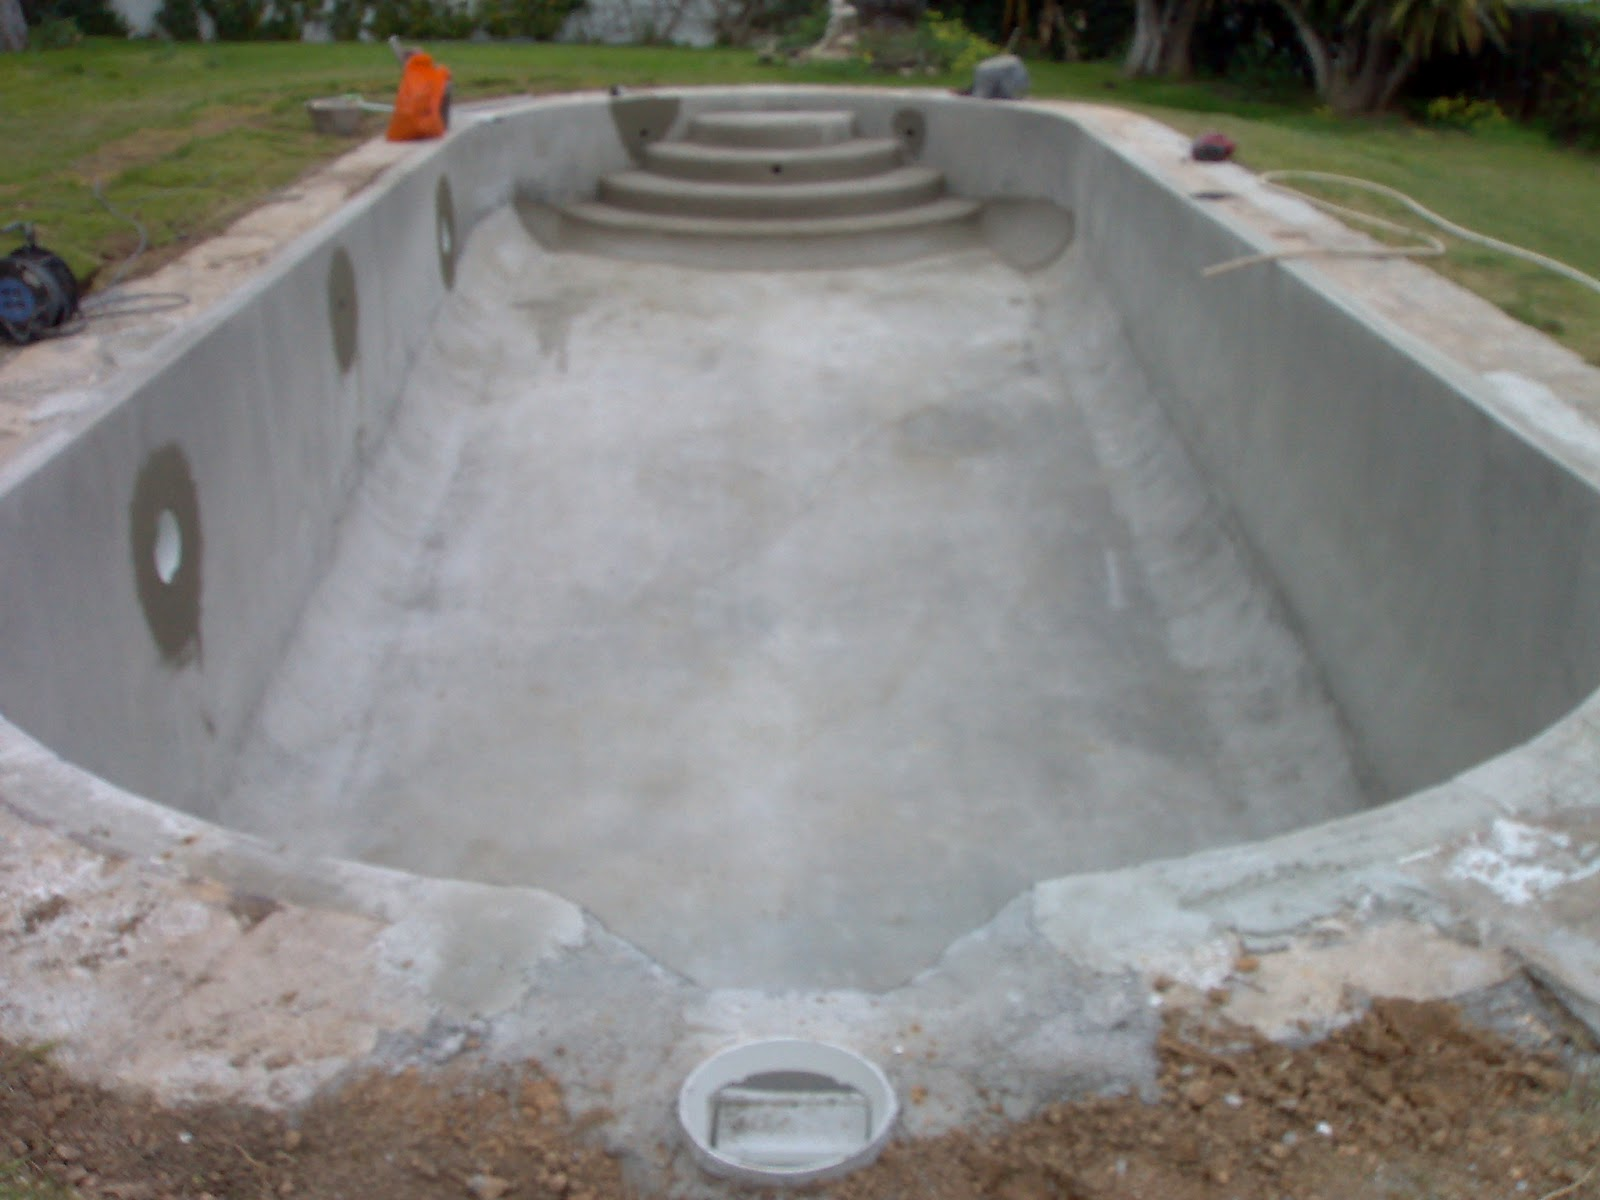 La piscina en un blog aver as de una piscina for Como se construye una piscina de hormigon